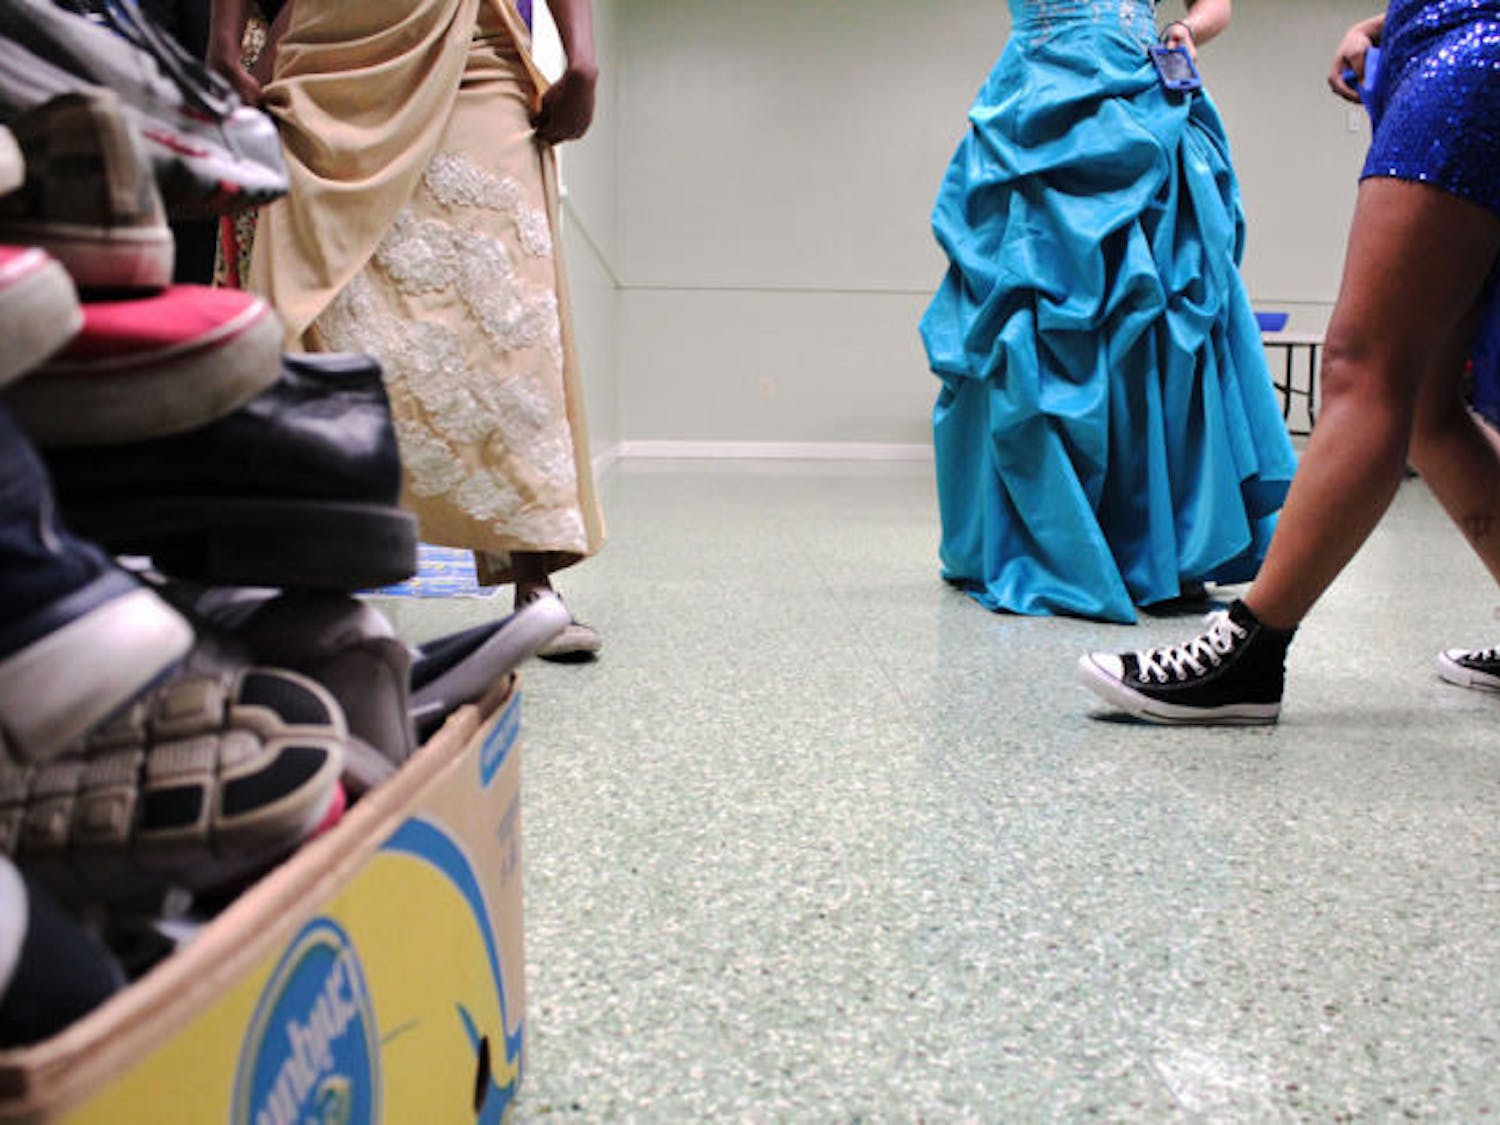 The members of the UF Lambda Rho chapter of Sigma Gamma Rho sorority wear sneakers to a formal dance on Saturday in the Broward Hall basement. The group collected $1,000 and about 100 pairs of sneakers for Soles4Souls and St. Francis House.